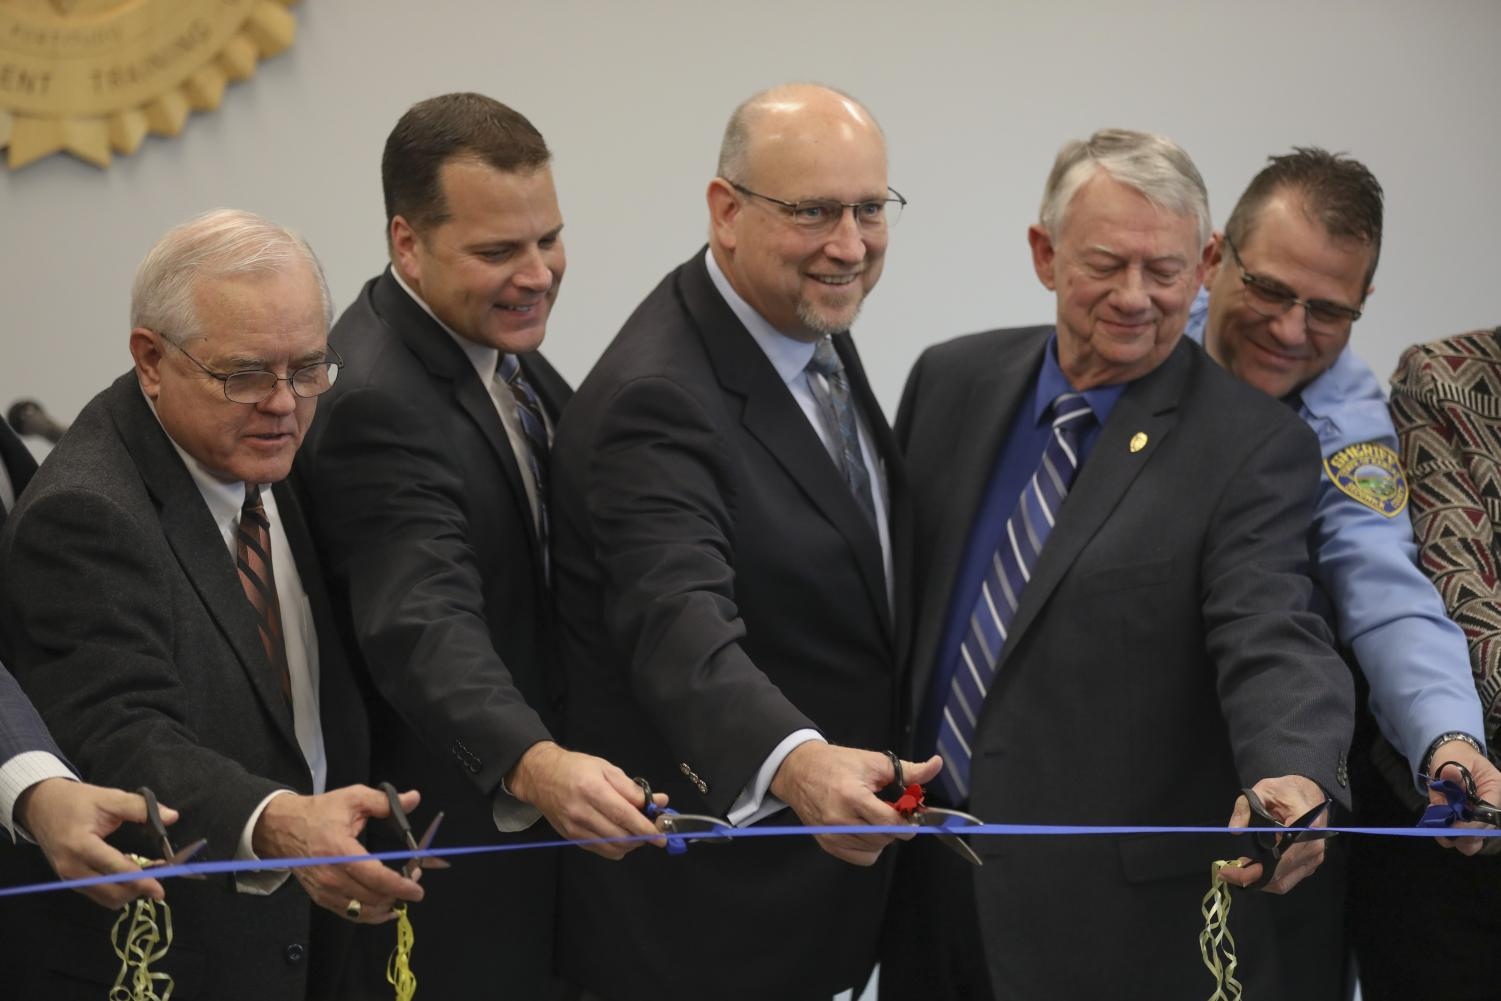 Wichita and Sedgwick County officials cut the ribbon on the new Law Enforcement Training Center on Wichita State's Innovation Campus.